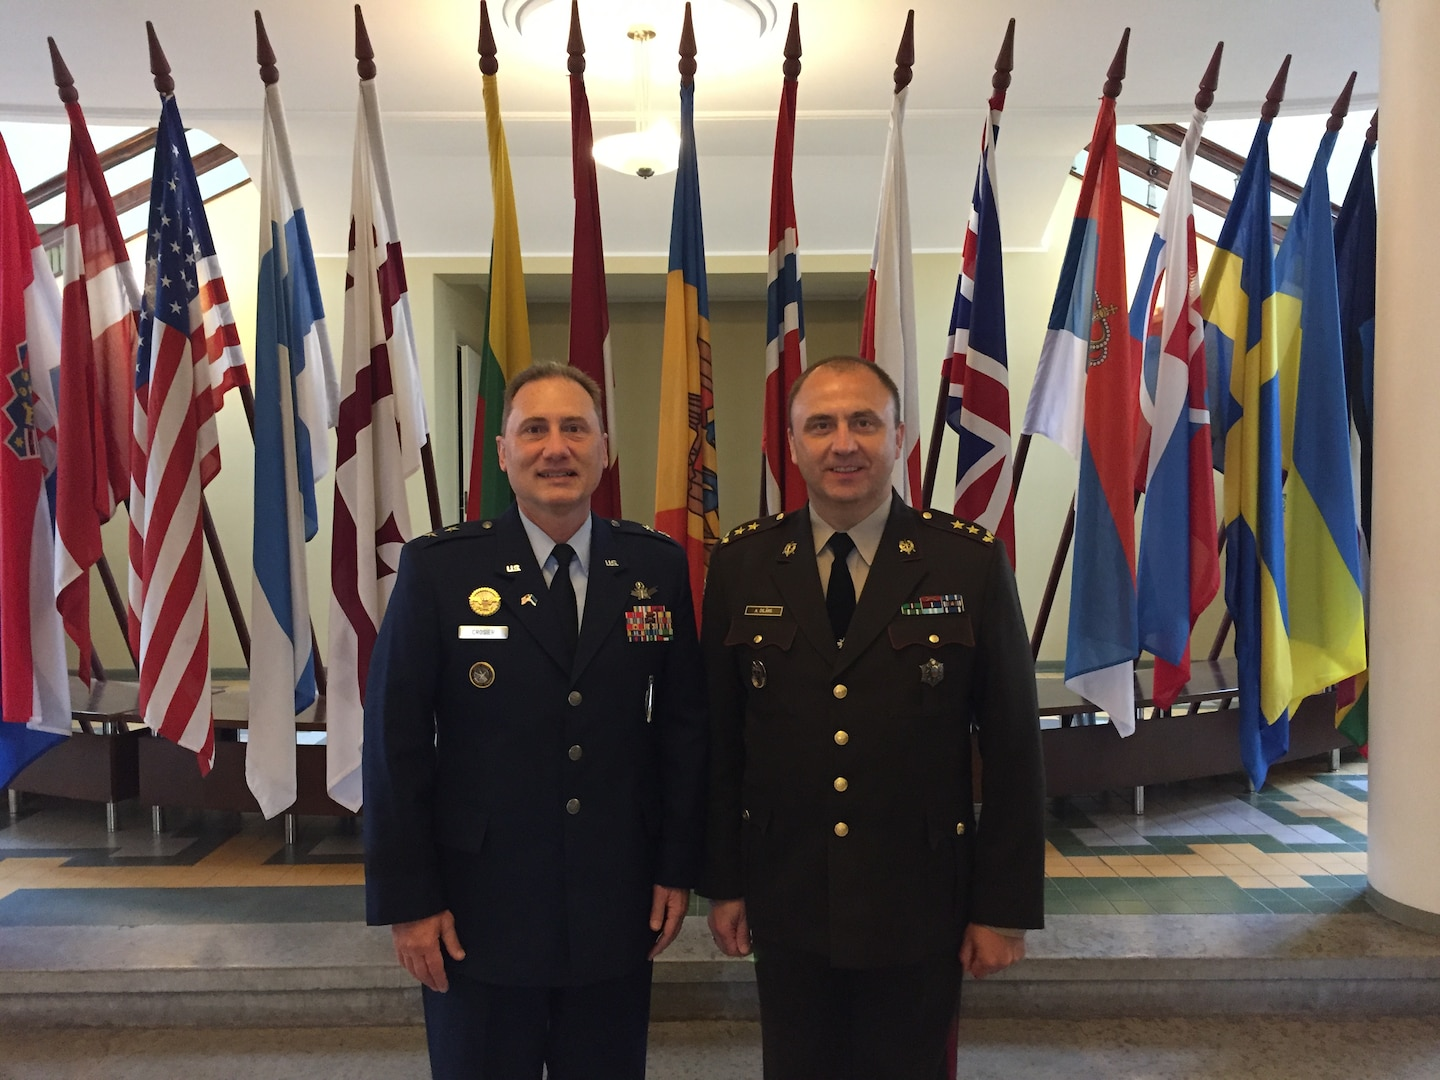 U.S. Air Force Maj. Gen. Clinton E. Crosier (left), U.S. Strategic Command (USSTRATCOM) director of plans and policy, meets with Latvian National Armed Forces Maj. Gen. Andis Dilāns, commandant of the Baltic Defence College, in Tartu, Estonia, May 24, 2017. During the visit, Crosier extended a formal invitation for the Baltic Defence College to join USSTRATCOM's Deterrence and Assurance Academic Alliance, which Dilans accepted. They become the first non-U.S. institution to join. The visit was one leg of a trip to six European countries Crosier made to strengthen ties with NATO allies and academic partners, May 23 to June 2, 2017. One of nine Department of Defense unified combatant commands, USSTRATCOM has global strategic missions assigned through the Unified Command Plan that include strategic deterrence, space operations, cyberspace operations, joint electronic warfare, global strike, missile defense, intelligence, and analysis and targeting.